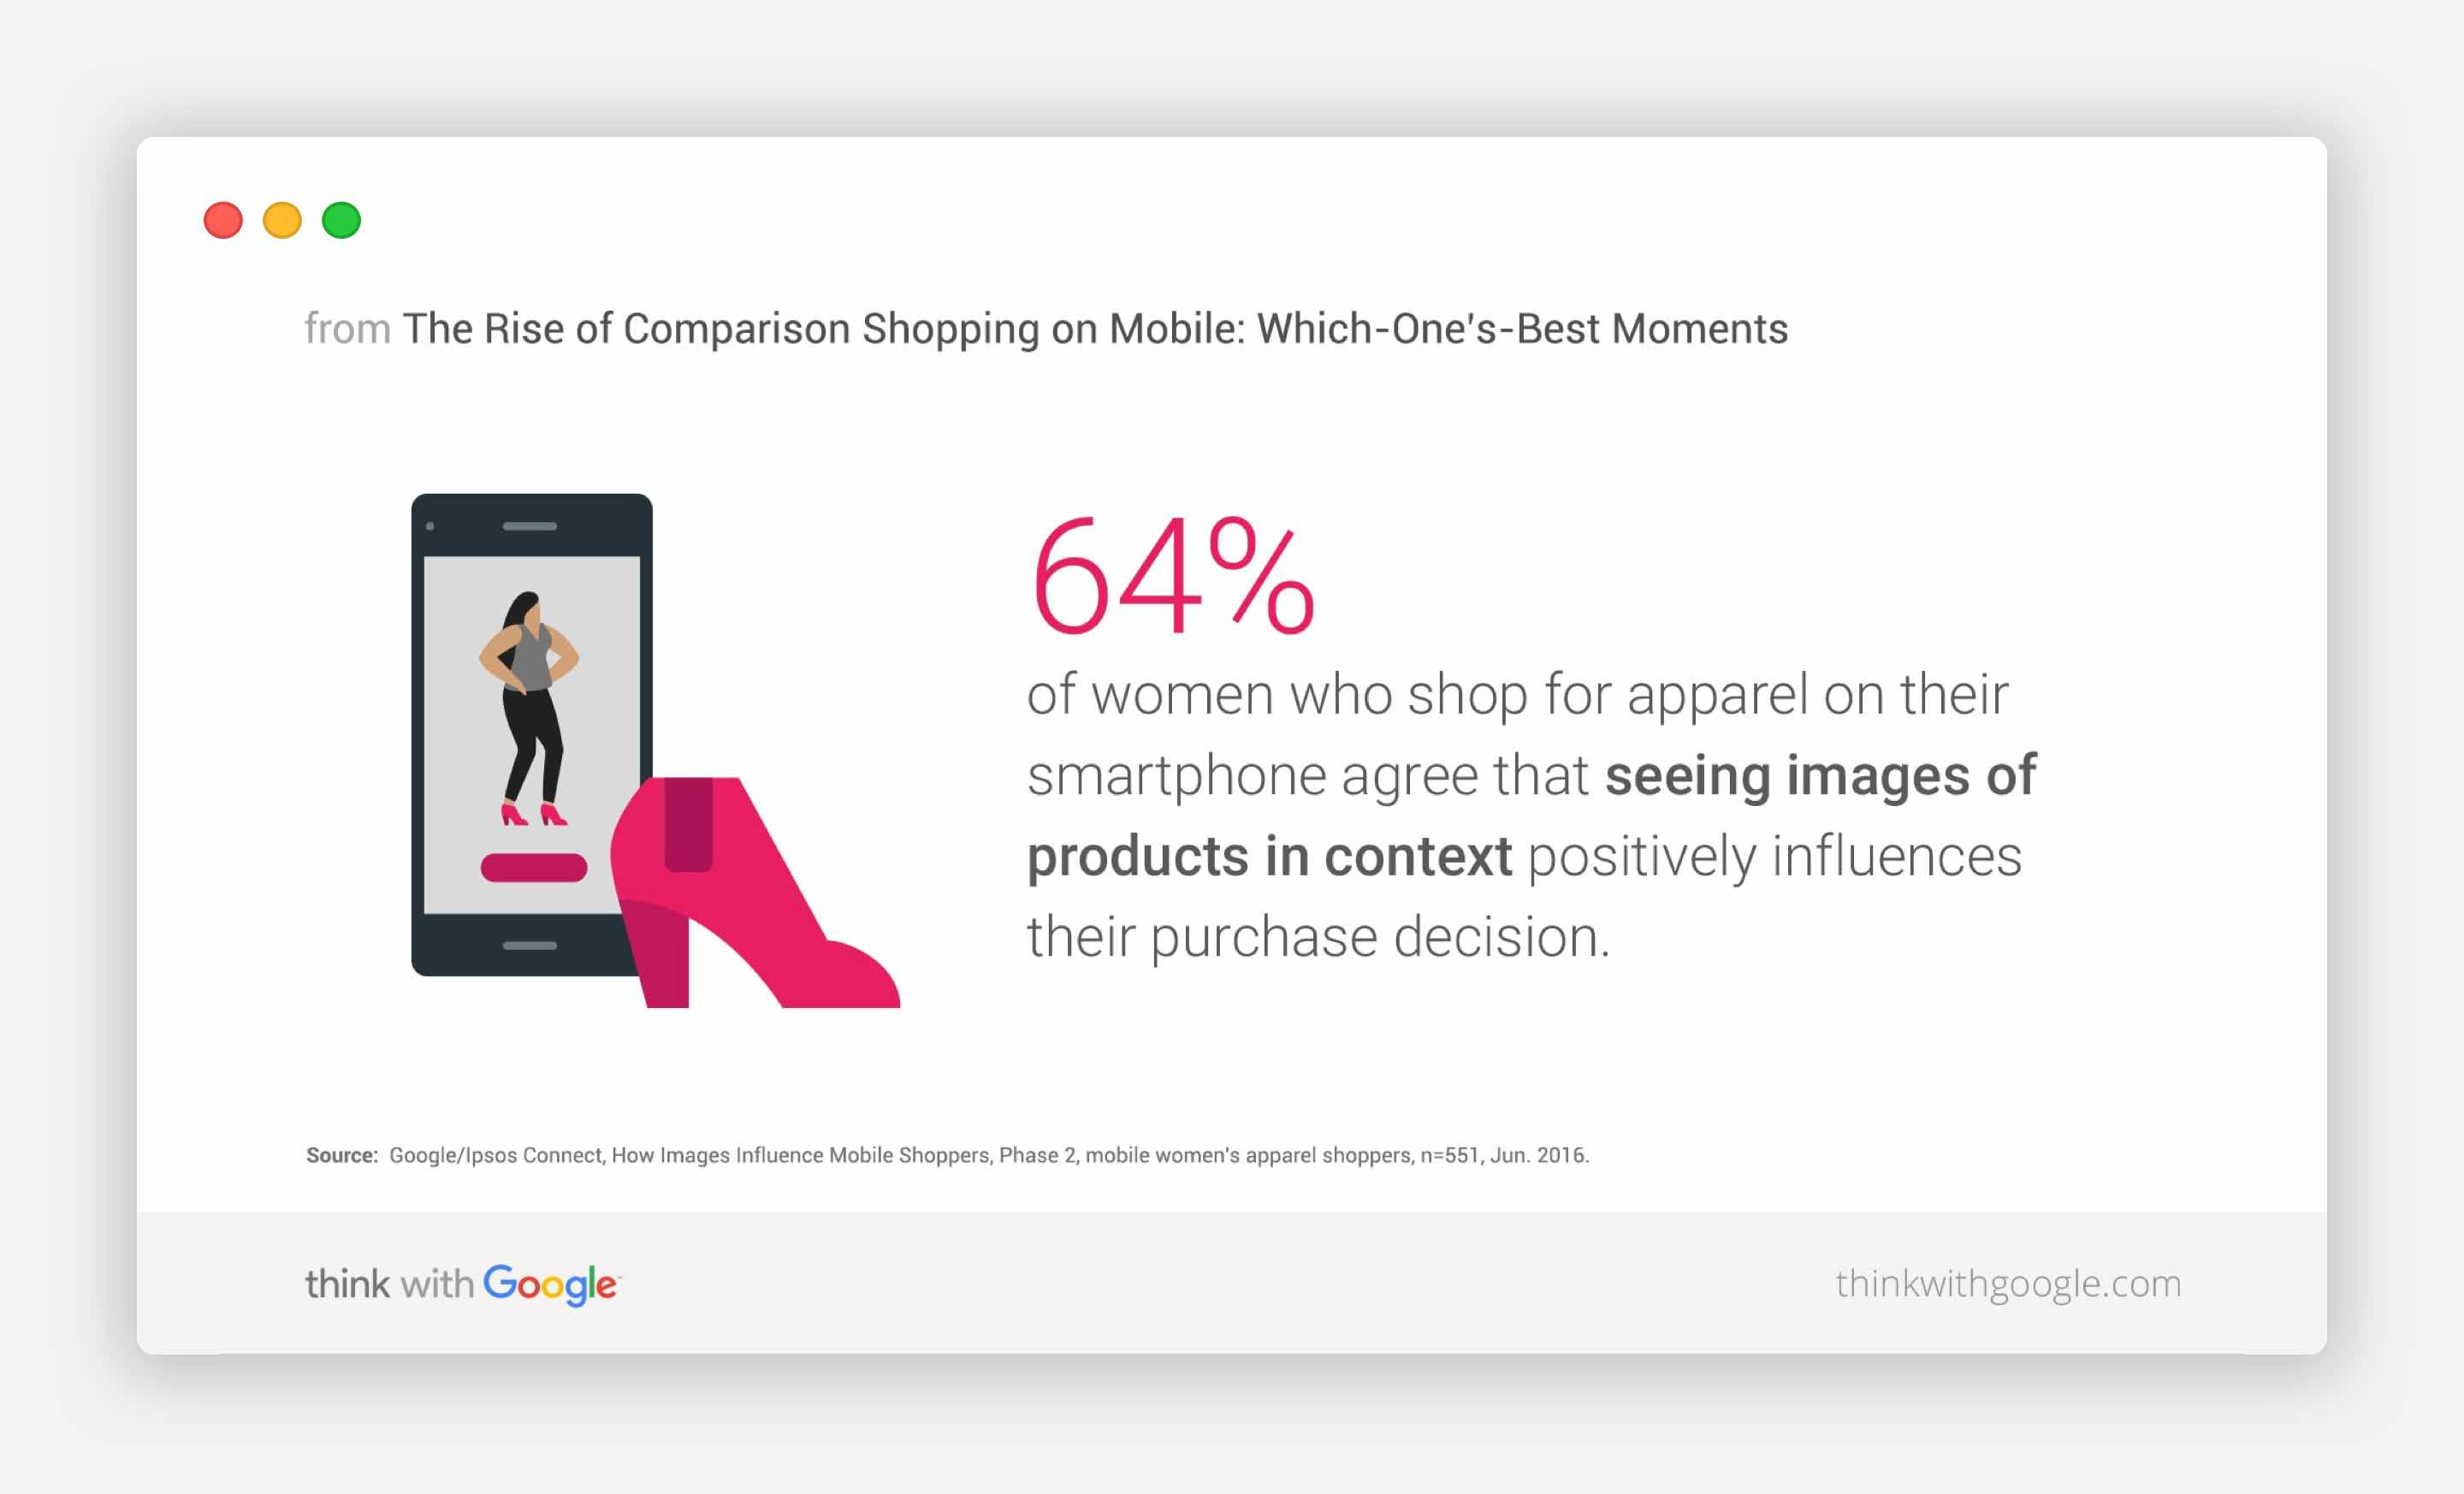 64% of women who shop for apparel on their smartphones say that images influence their purchase decision